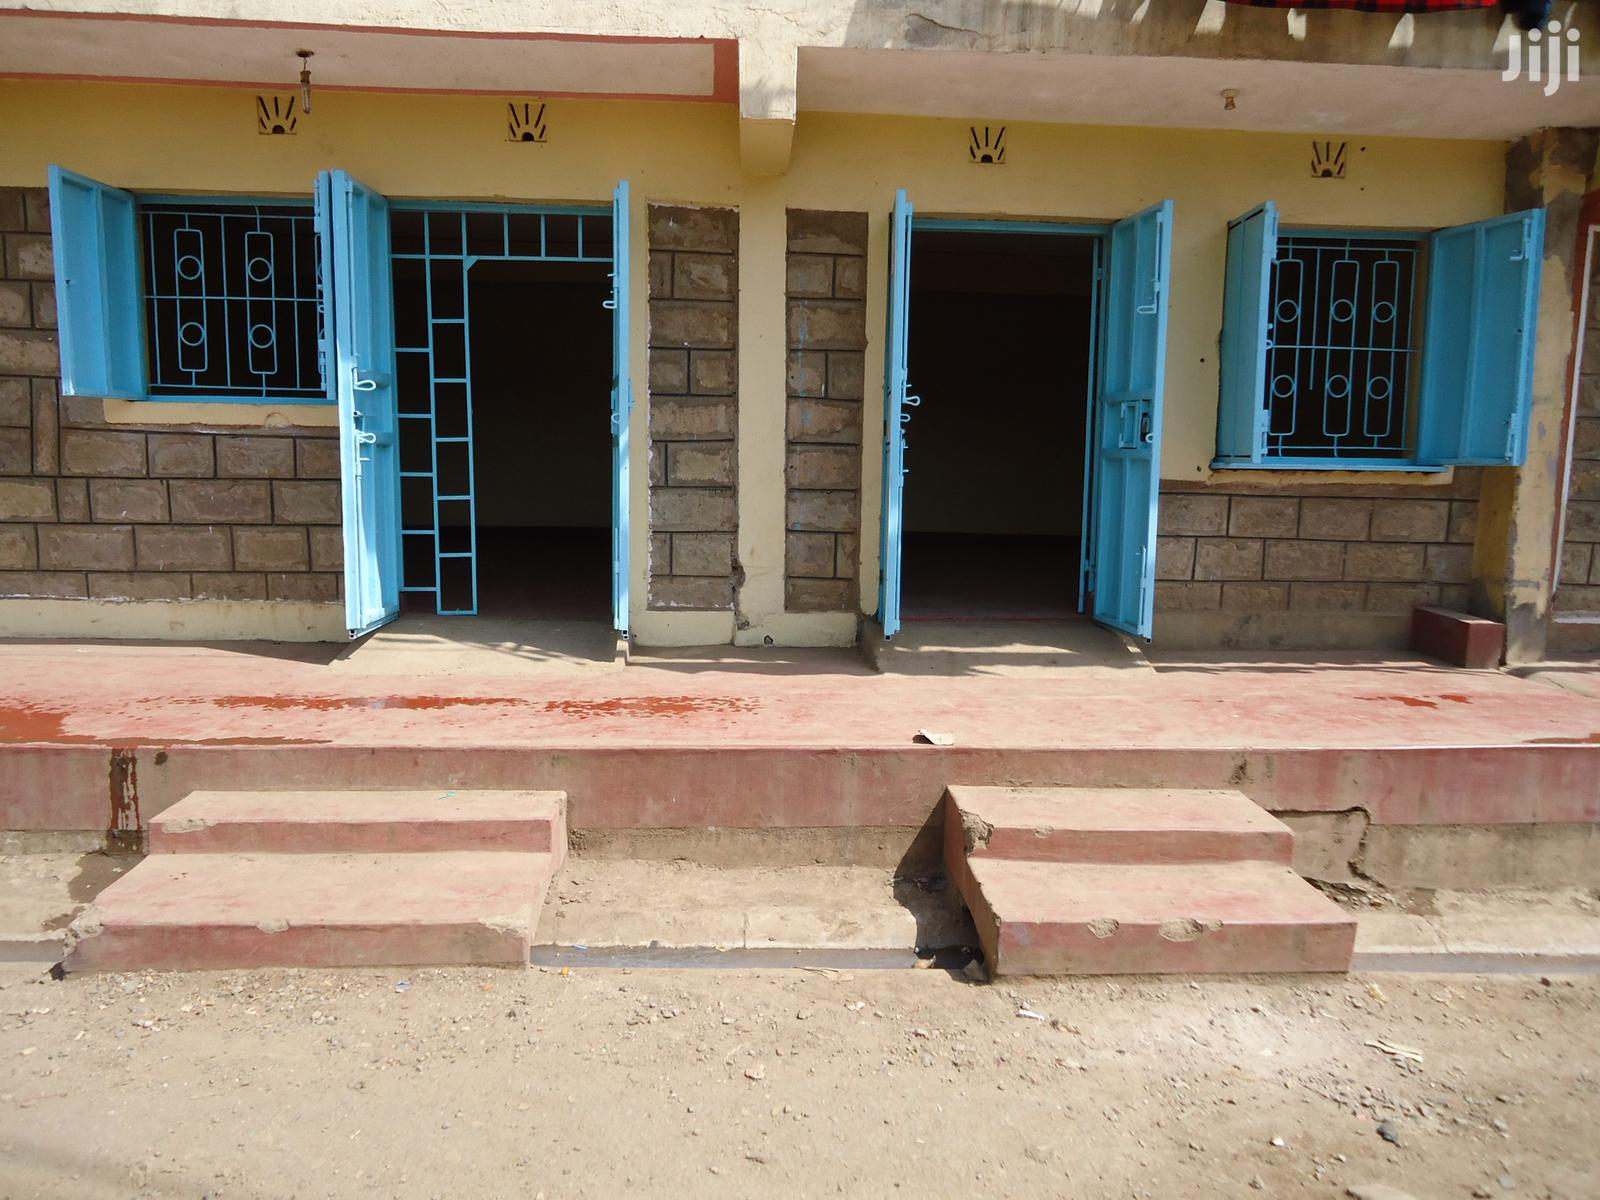 Spacious Shop/ Bed Sitter. Kayole Maria Stage | Houses & Apartments For Rent for sale in Embakasi, Nairobi, Kenya